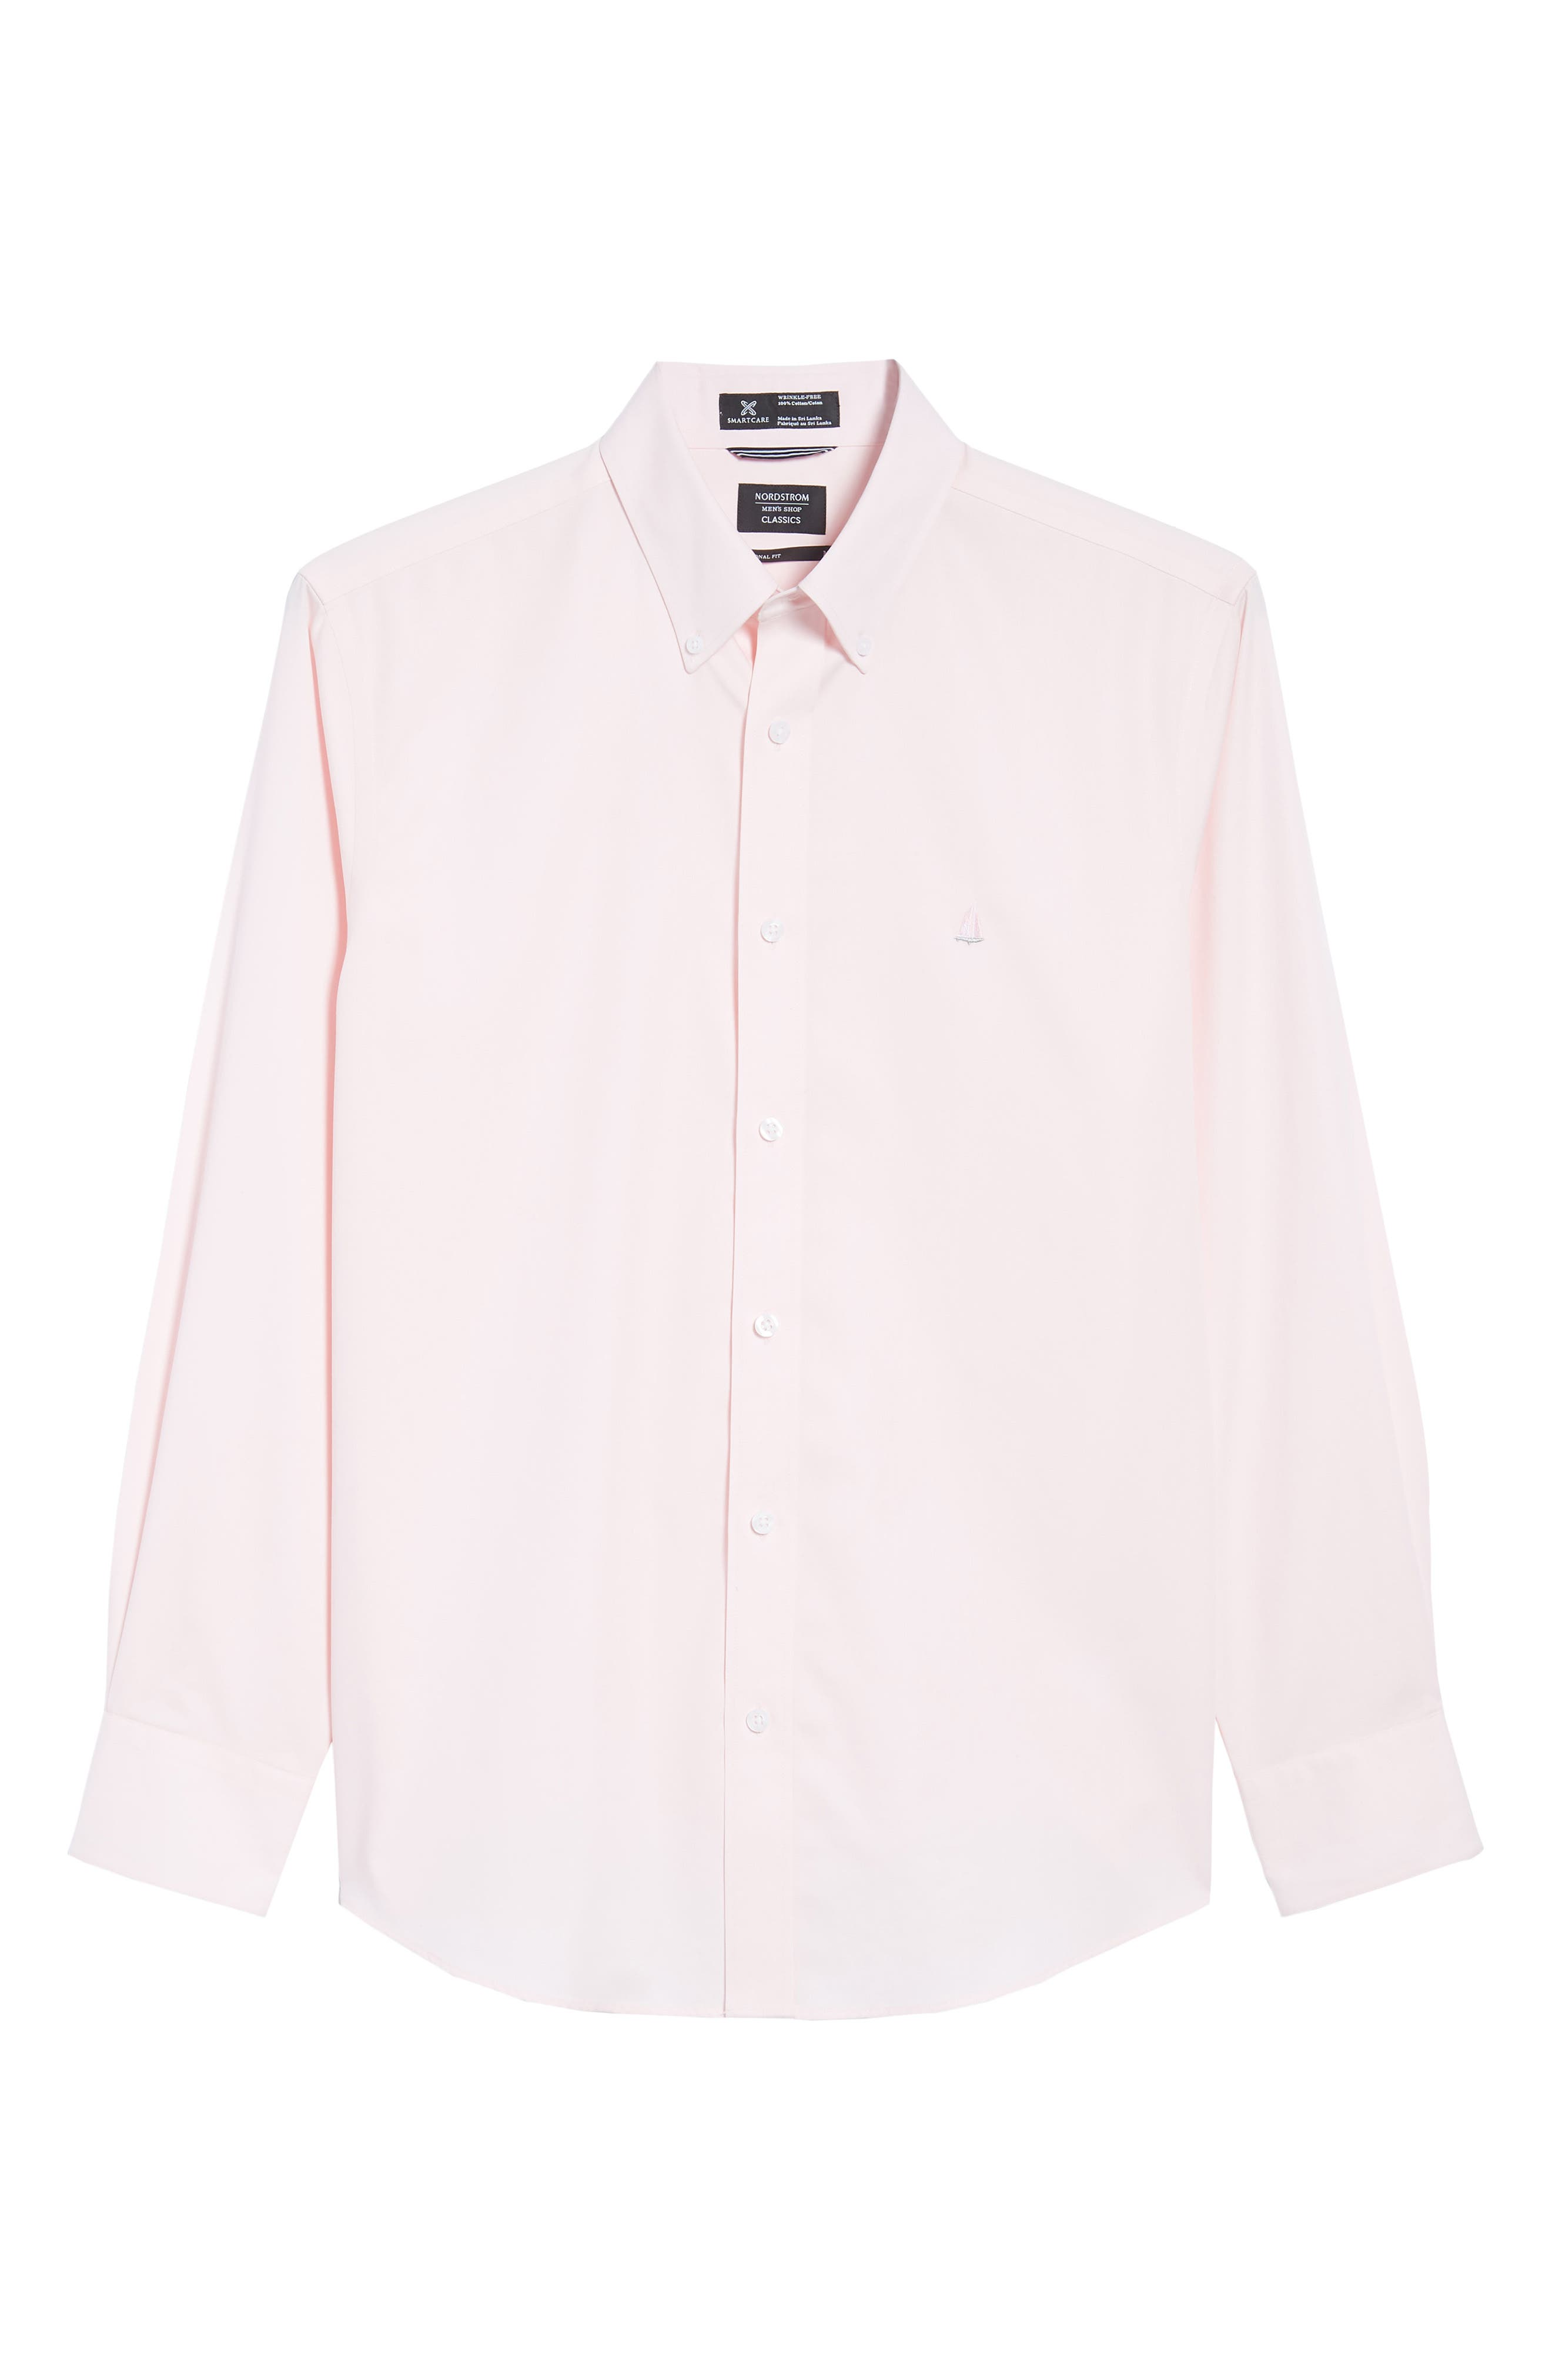 Smartcare<sup>™</sup> Traditional Fit Twill Boat Shirt,                             Alternate thumbnail 6, color,                             Pink Breath